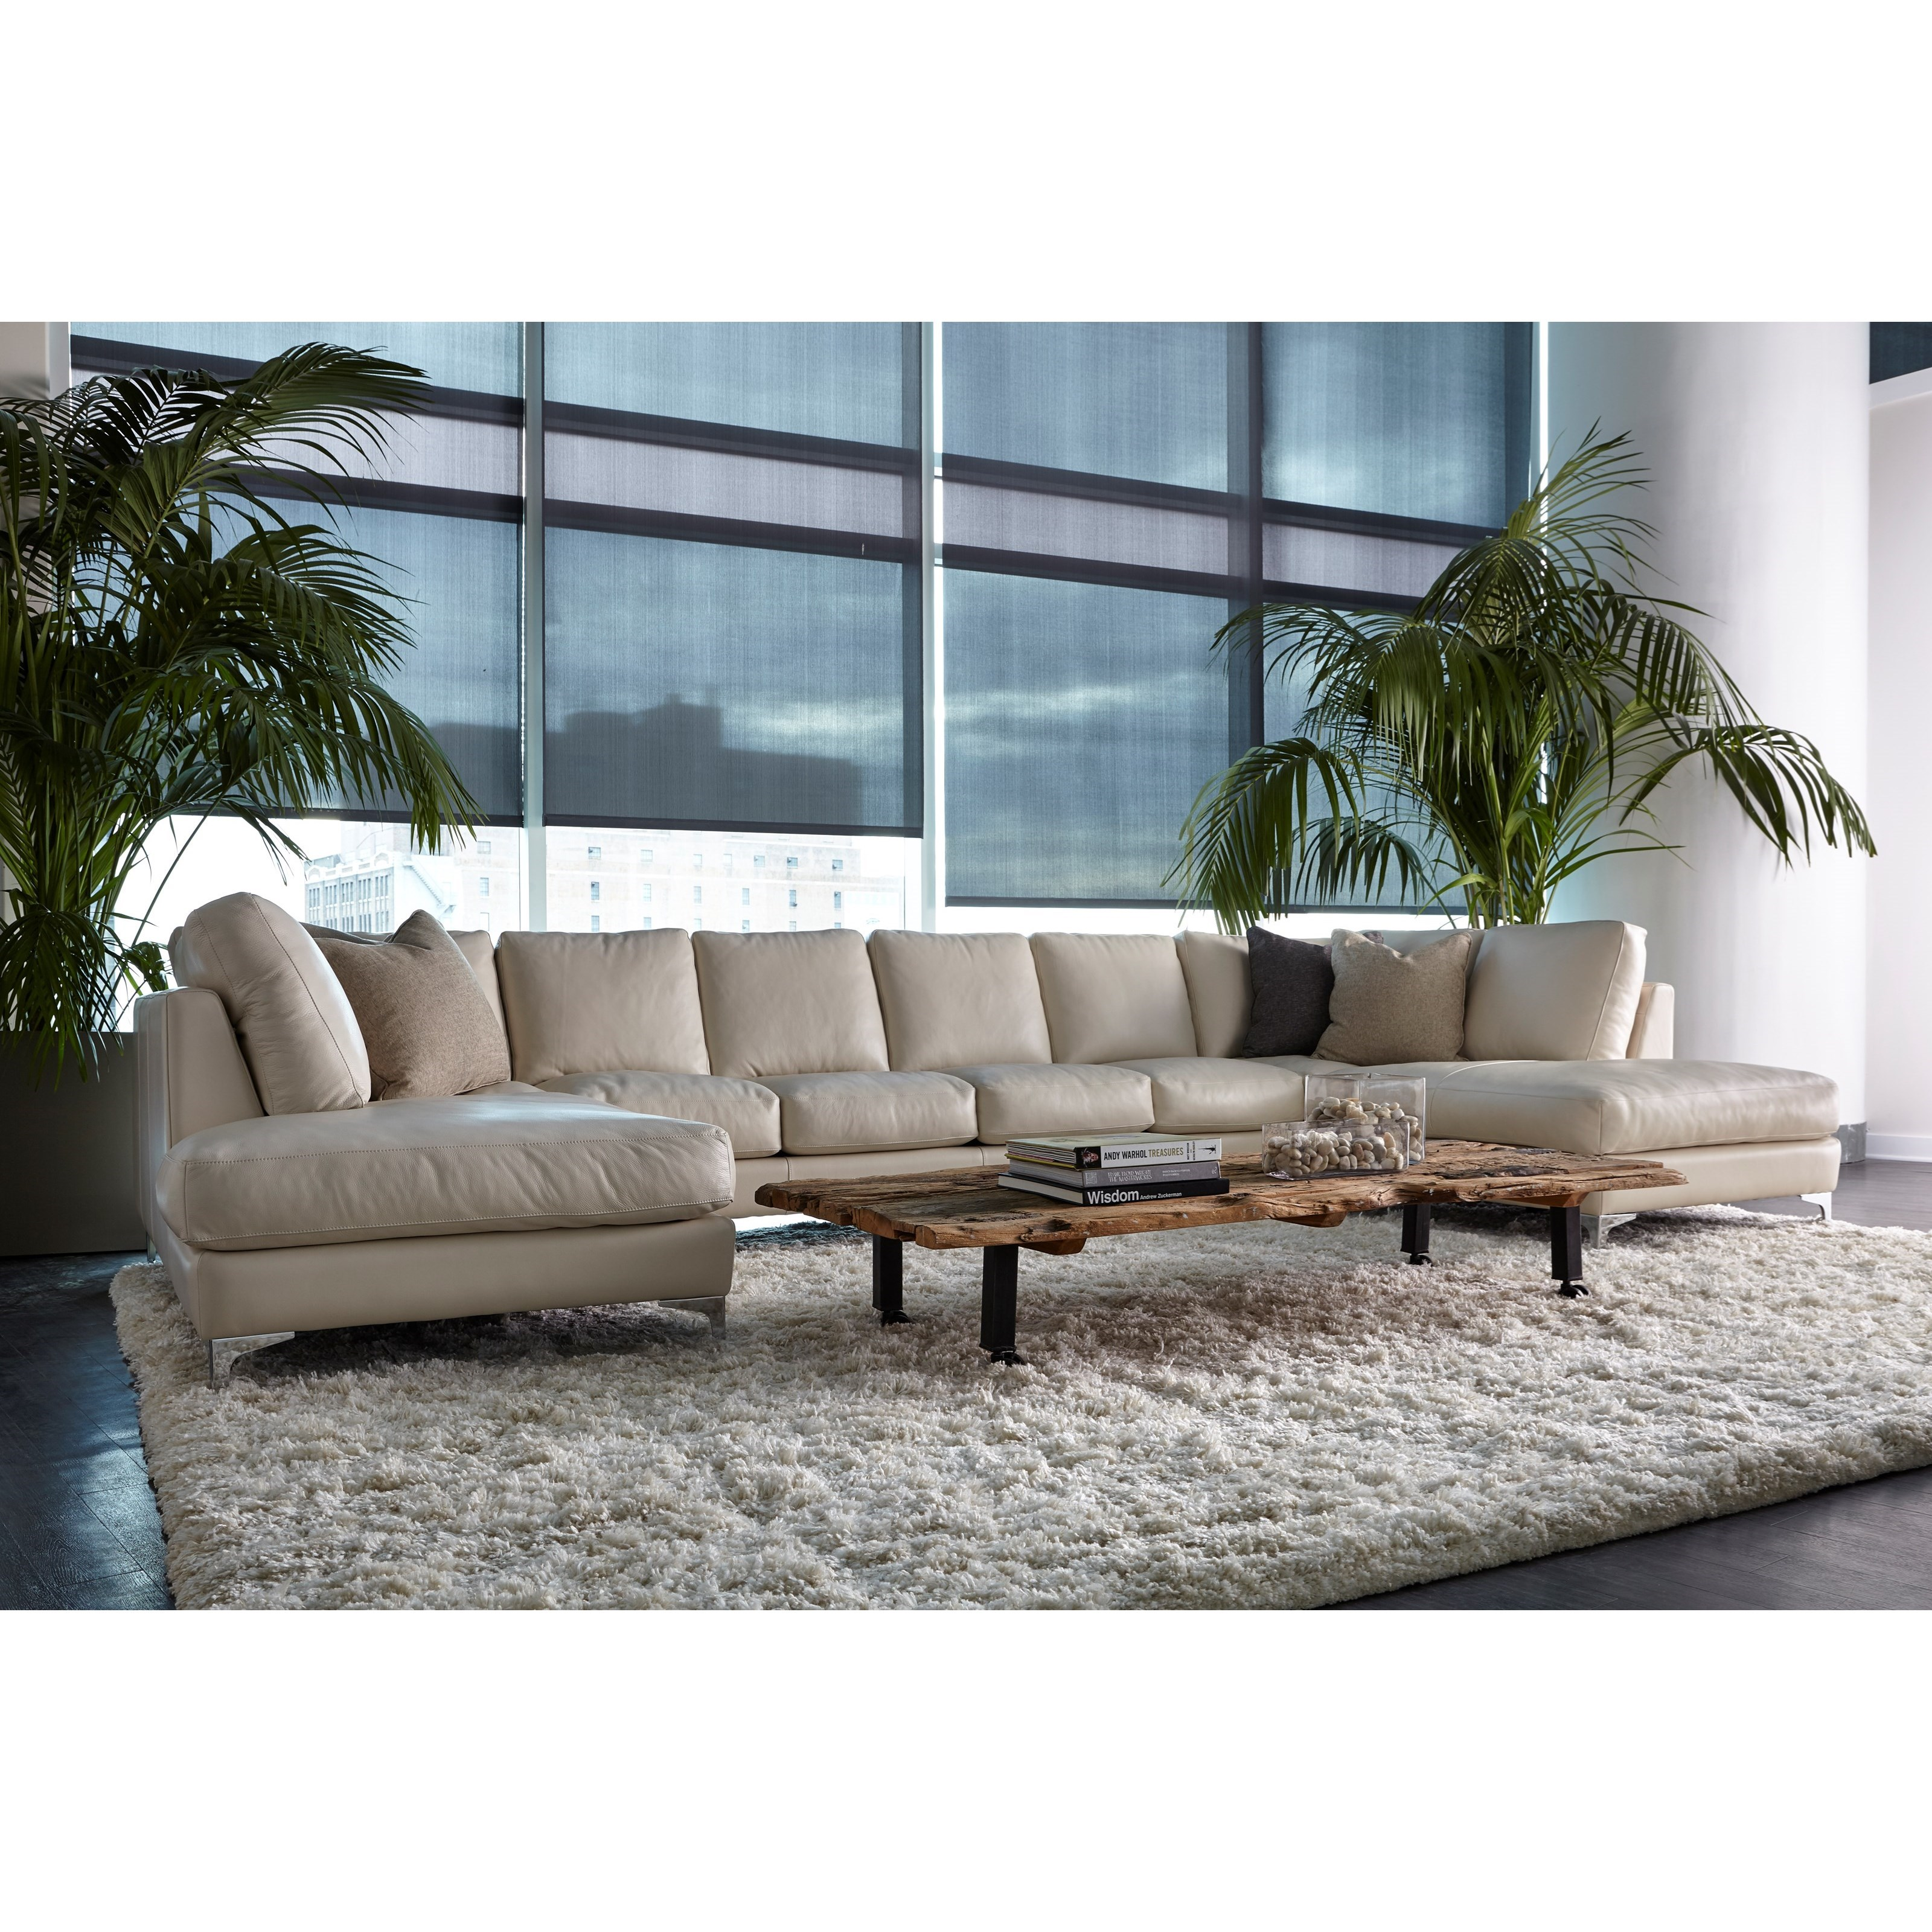 Kendall 6-Seat U-Shape Sectional by American Leather at Jacksonville Furniture Mart